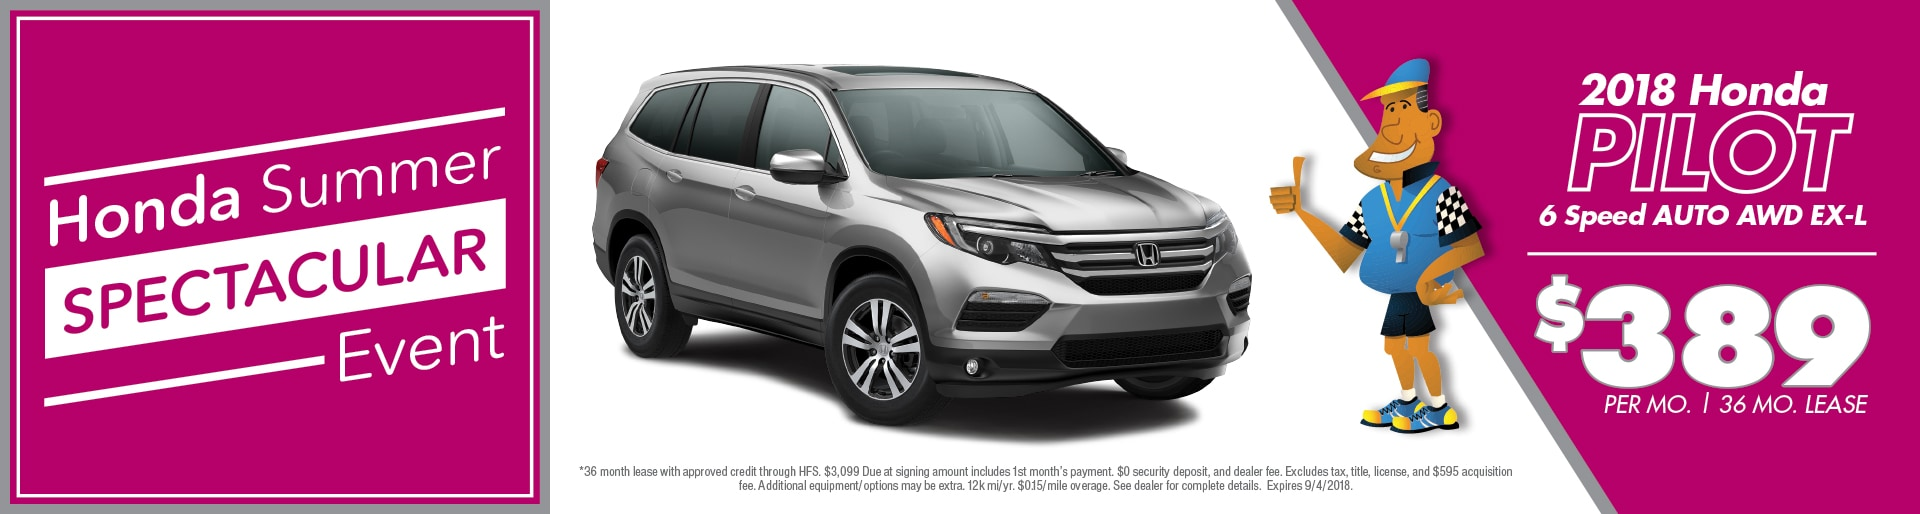 Merrillville's Team Honda | New and Used Honda Cars